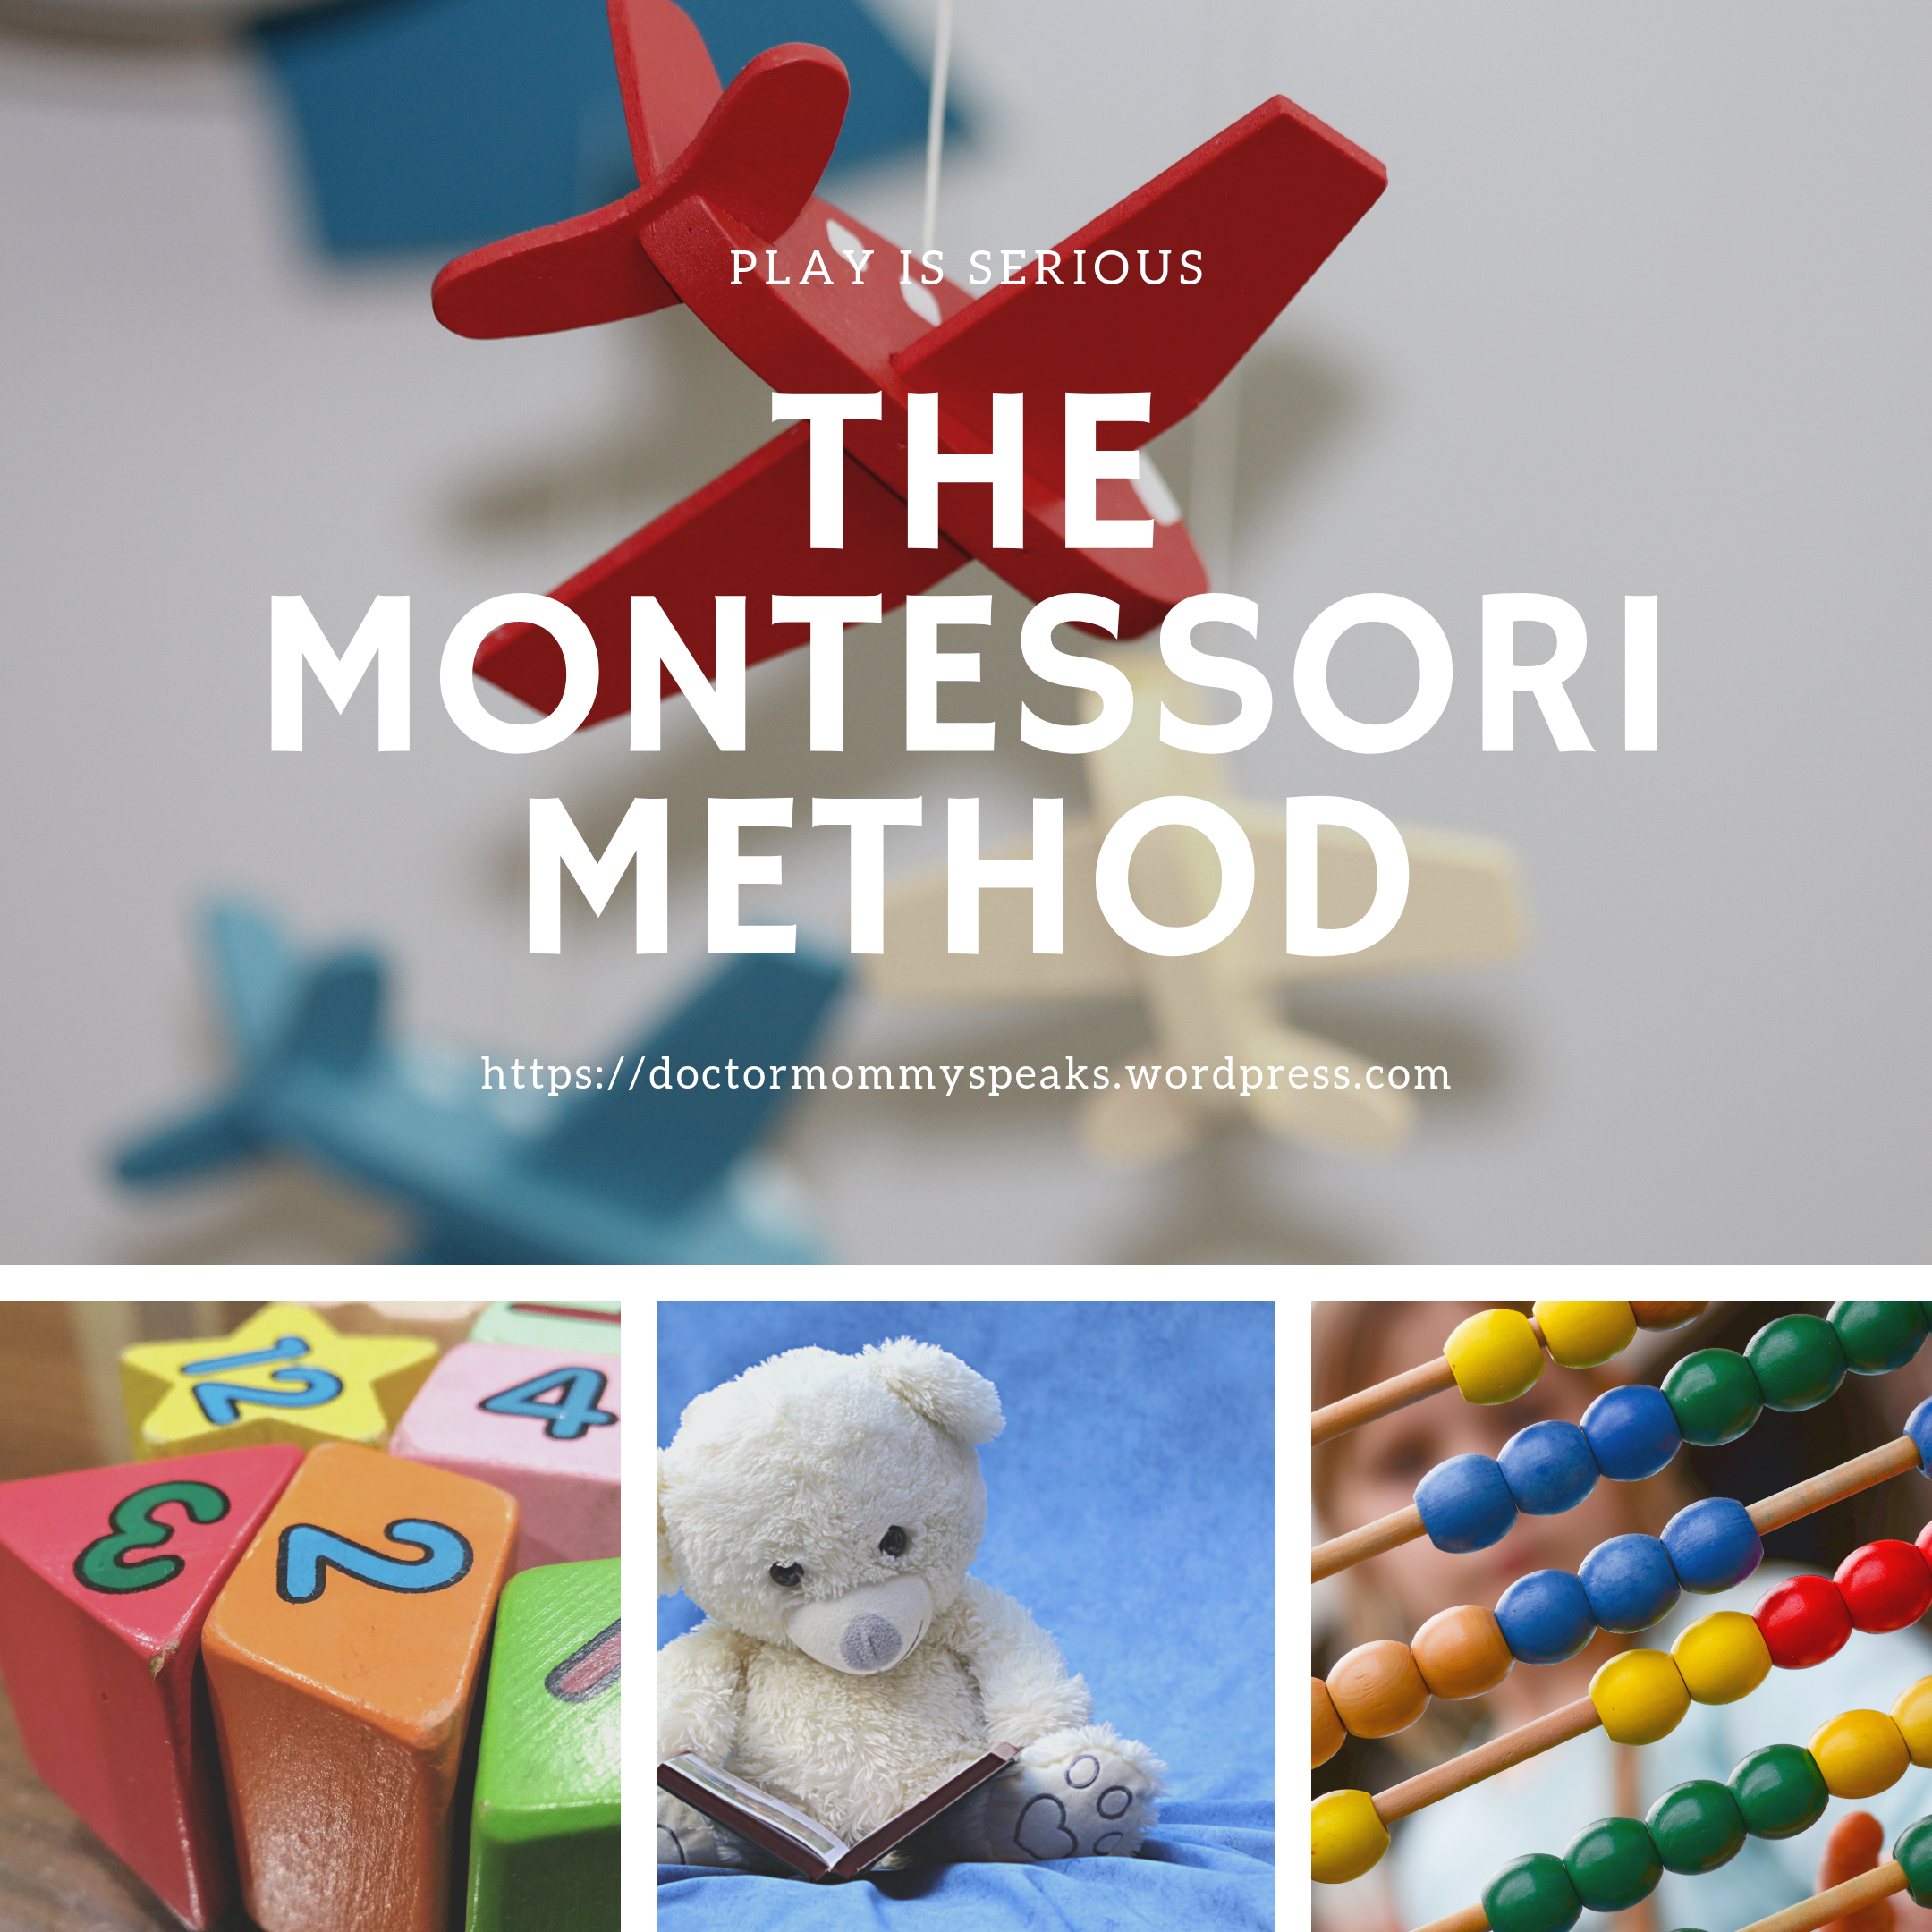 The Montessori method of play and learning.